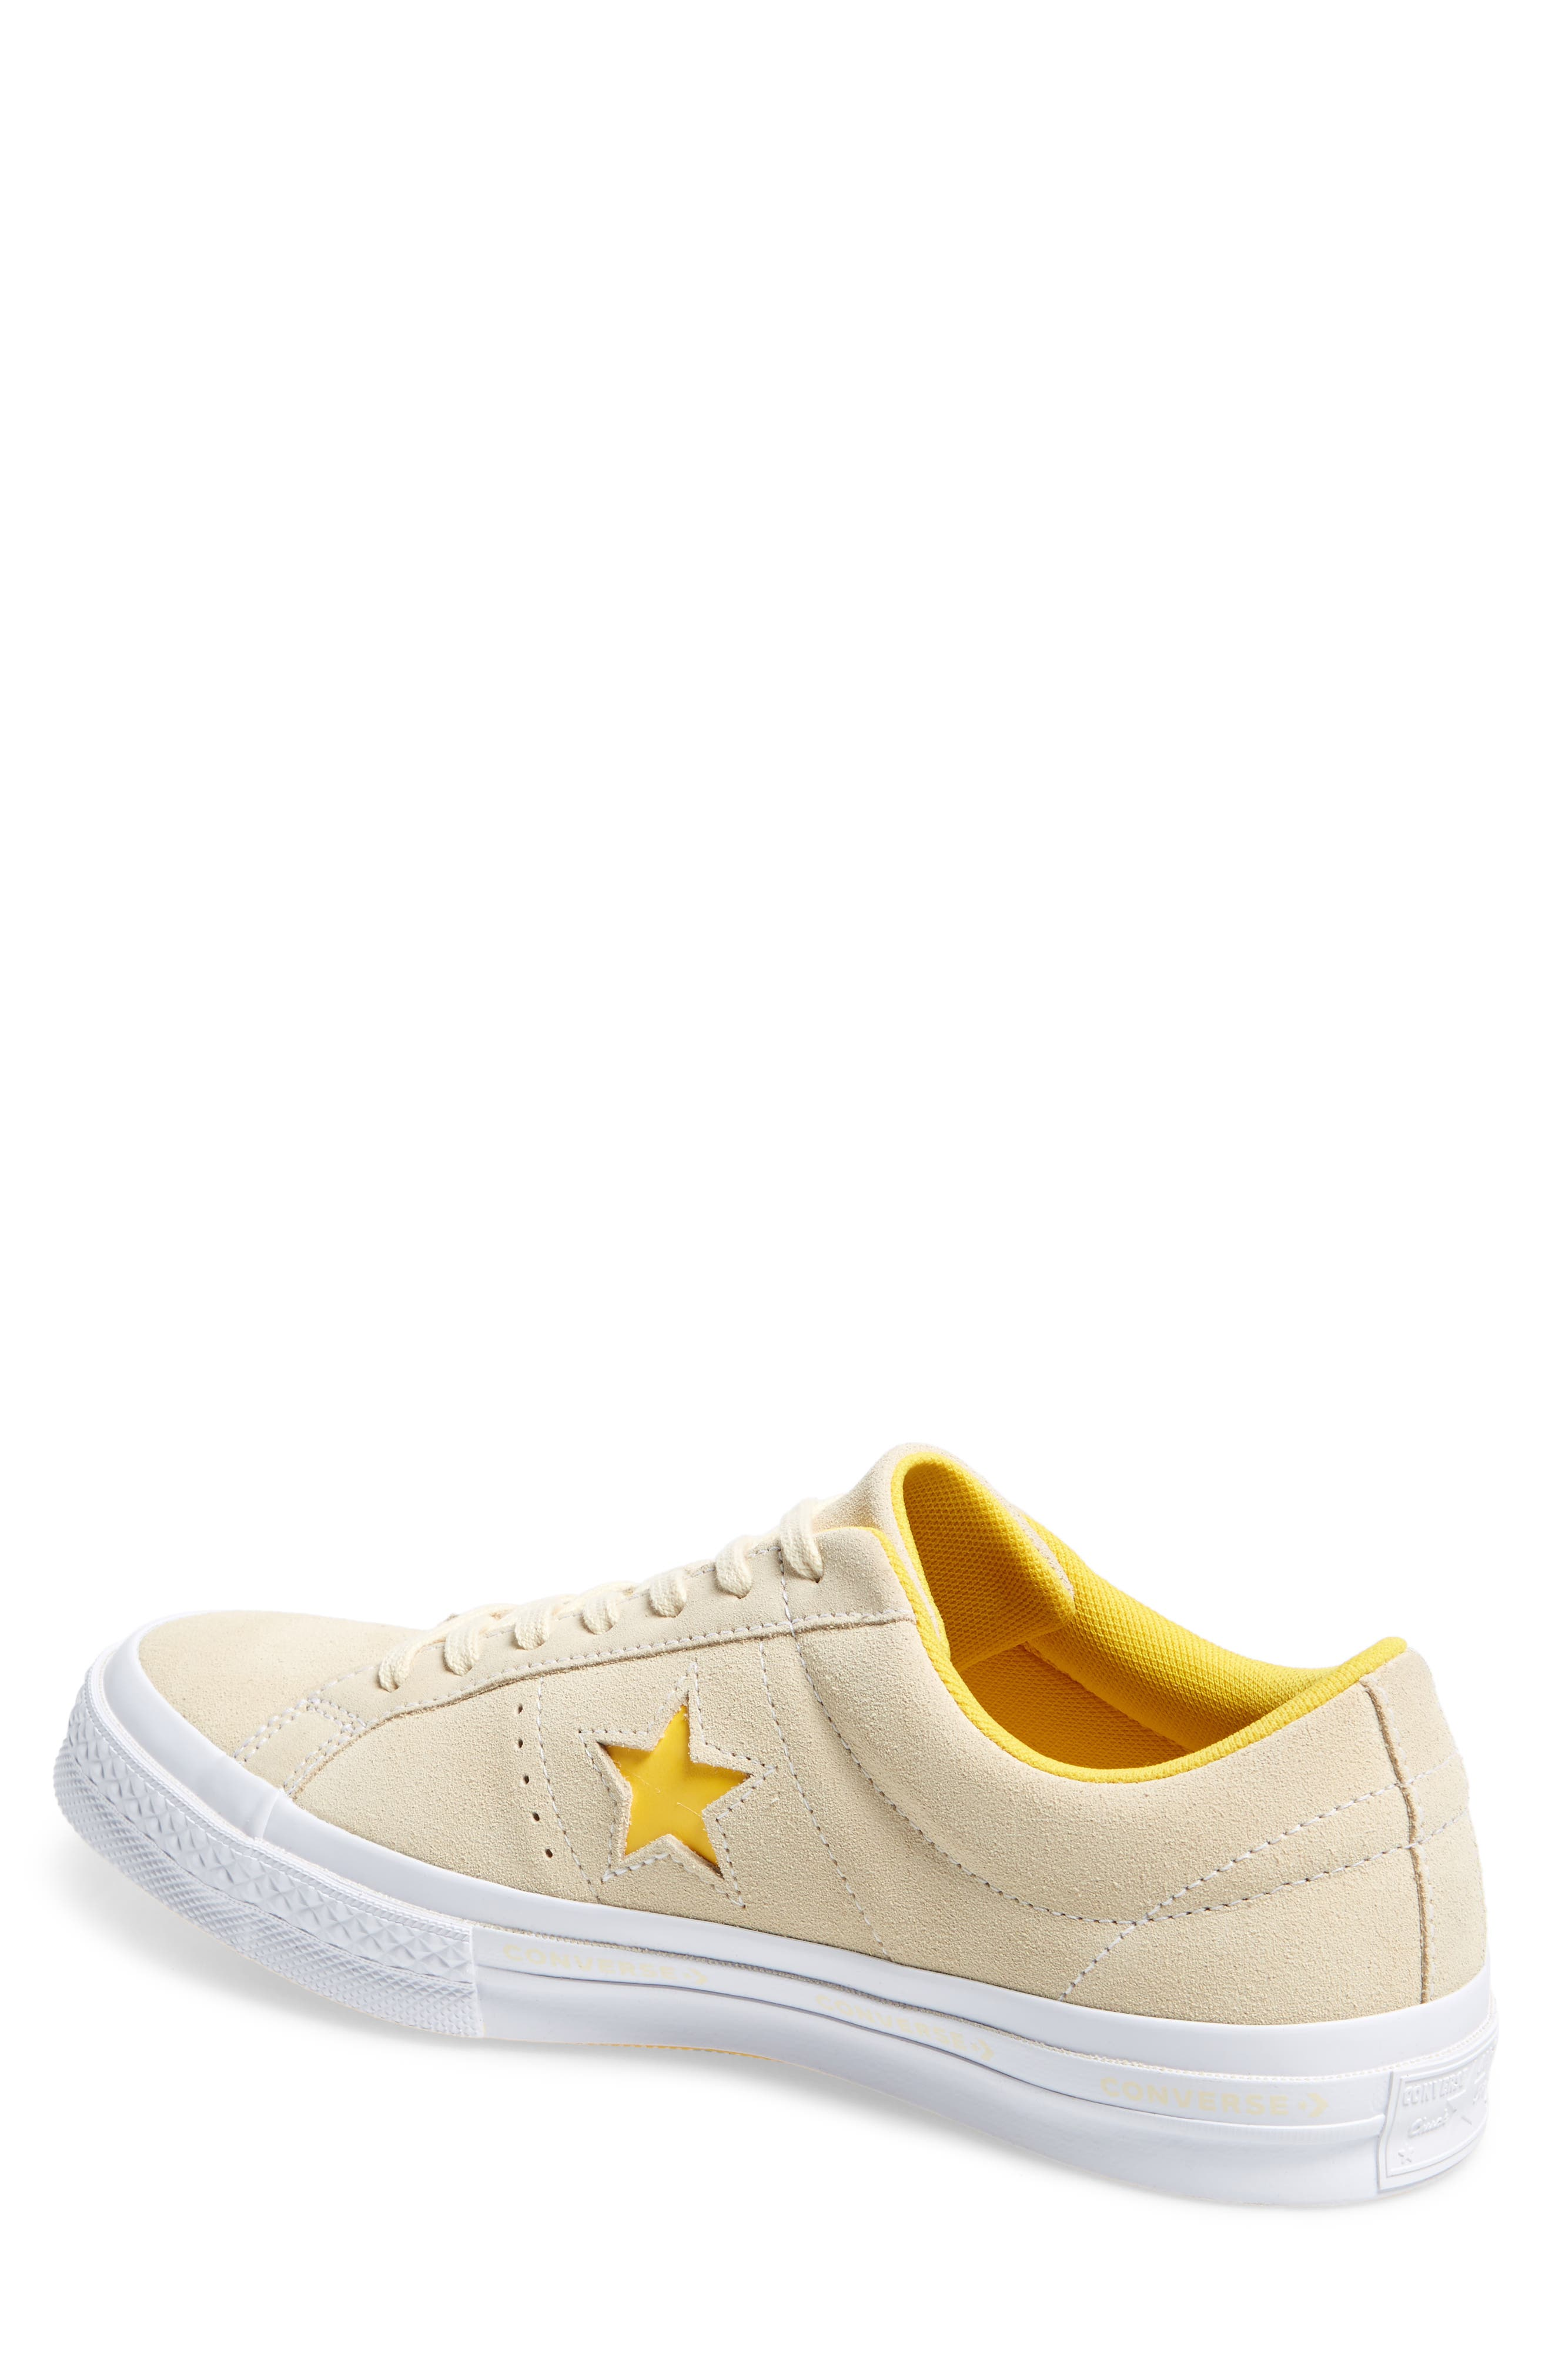 Chuck Taylor<sup>®</sup> One Star Pinstripe Sneaker,                             Alternate thumbnail 8, color,